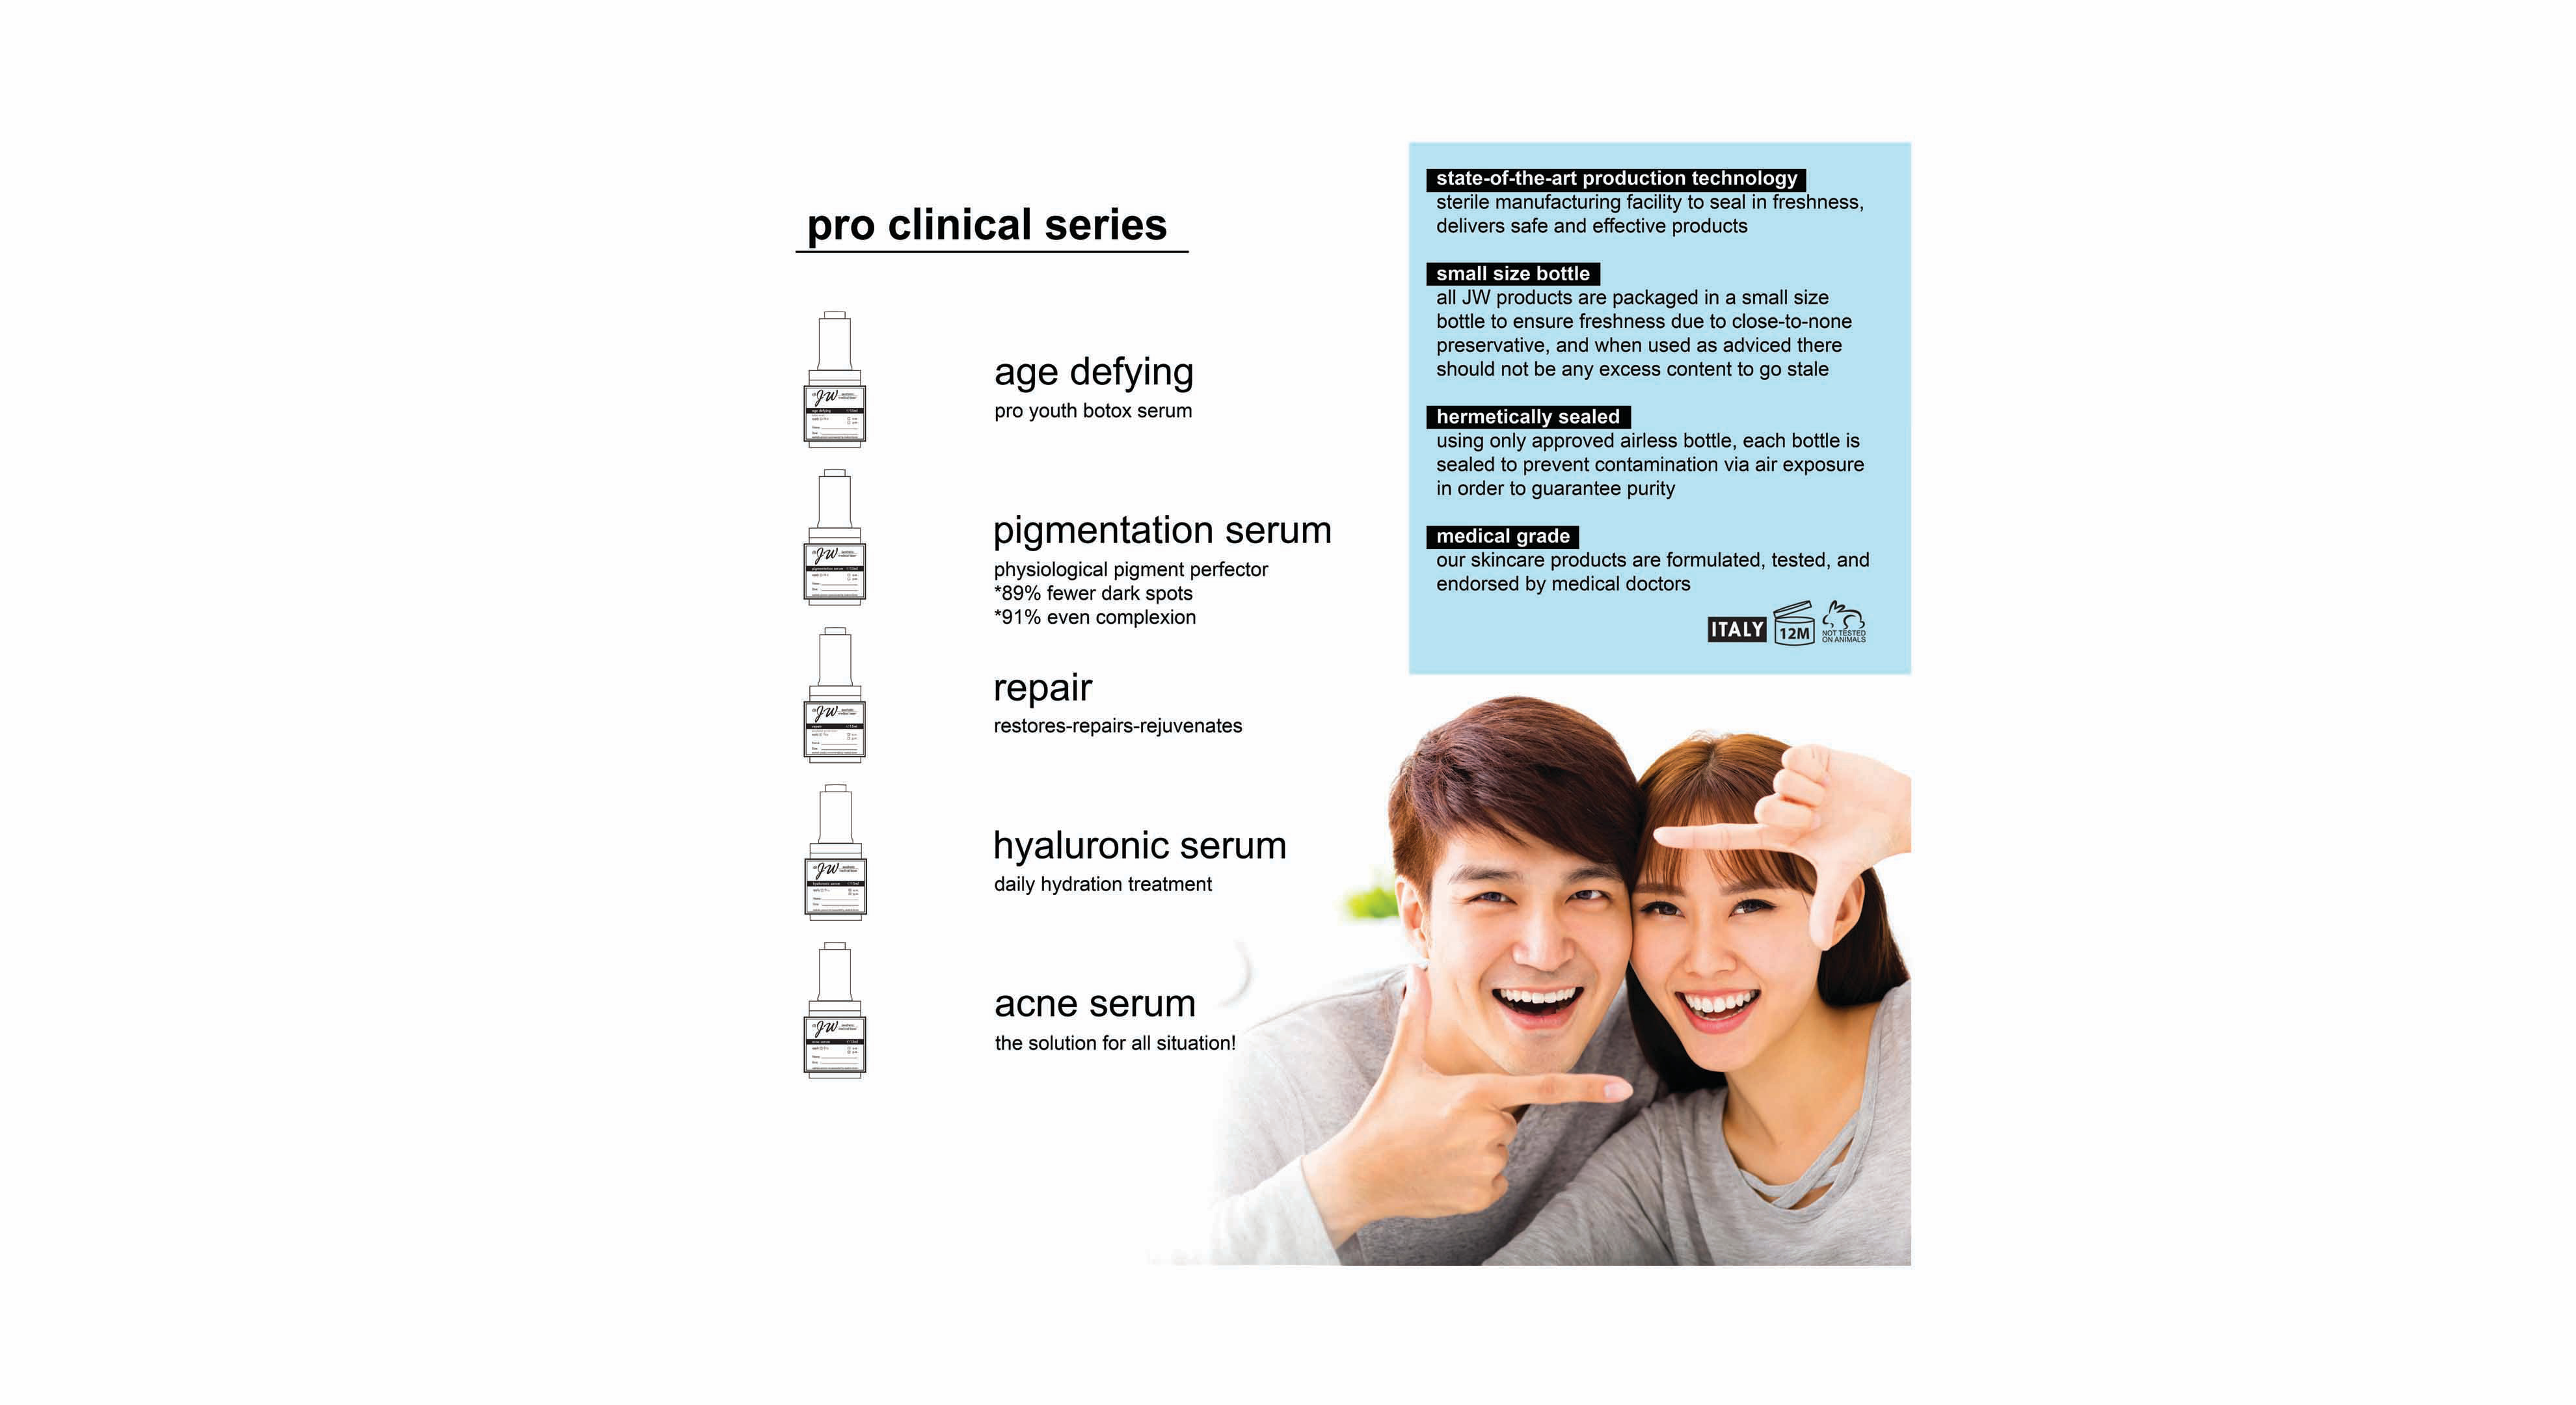 pro clinical series